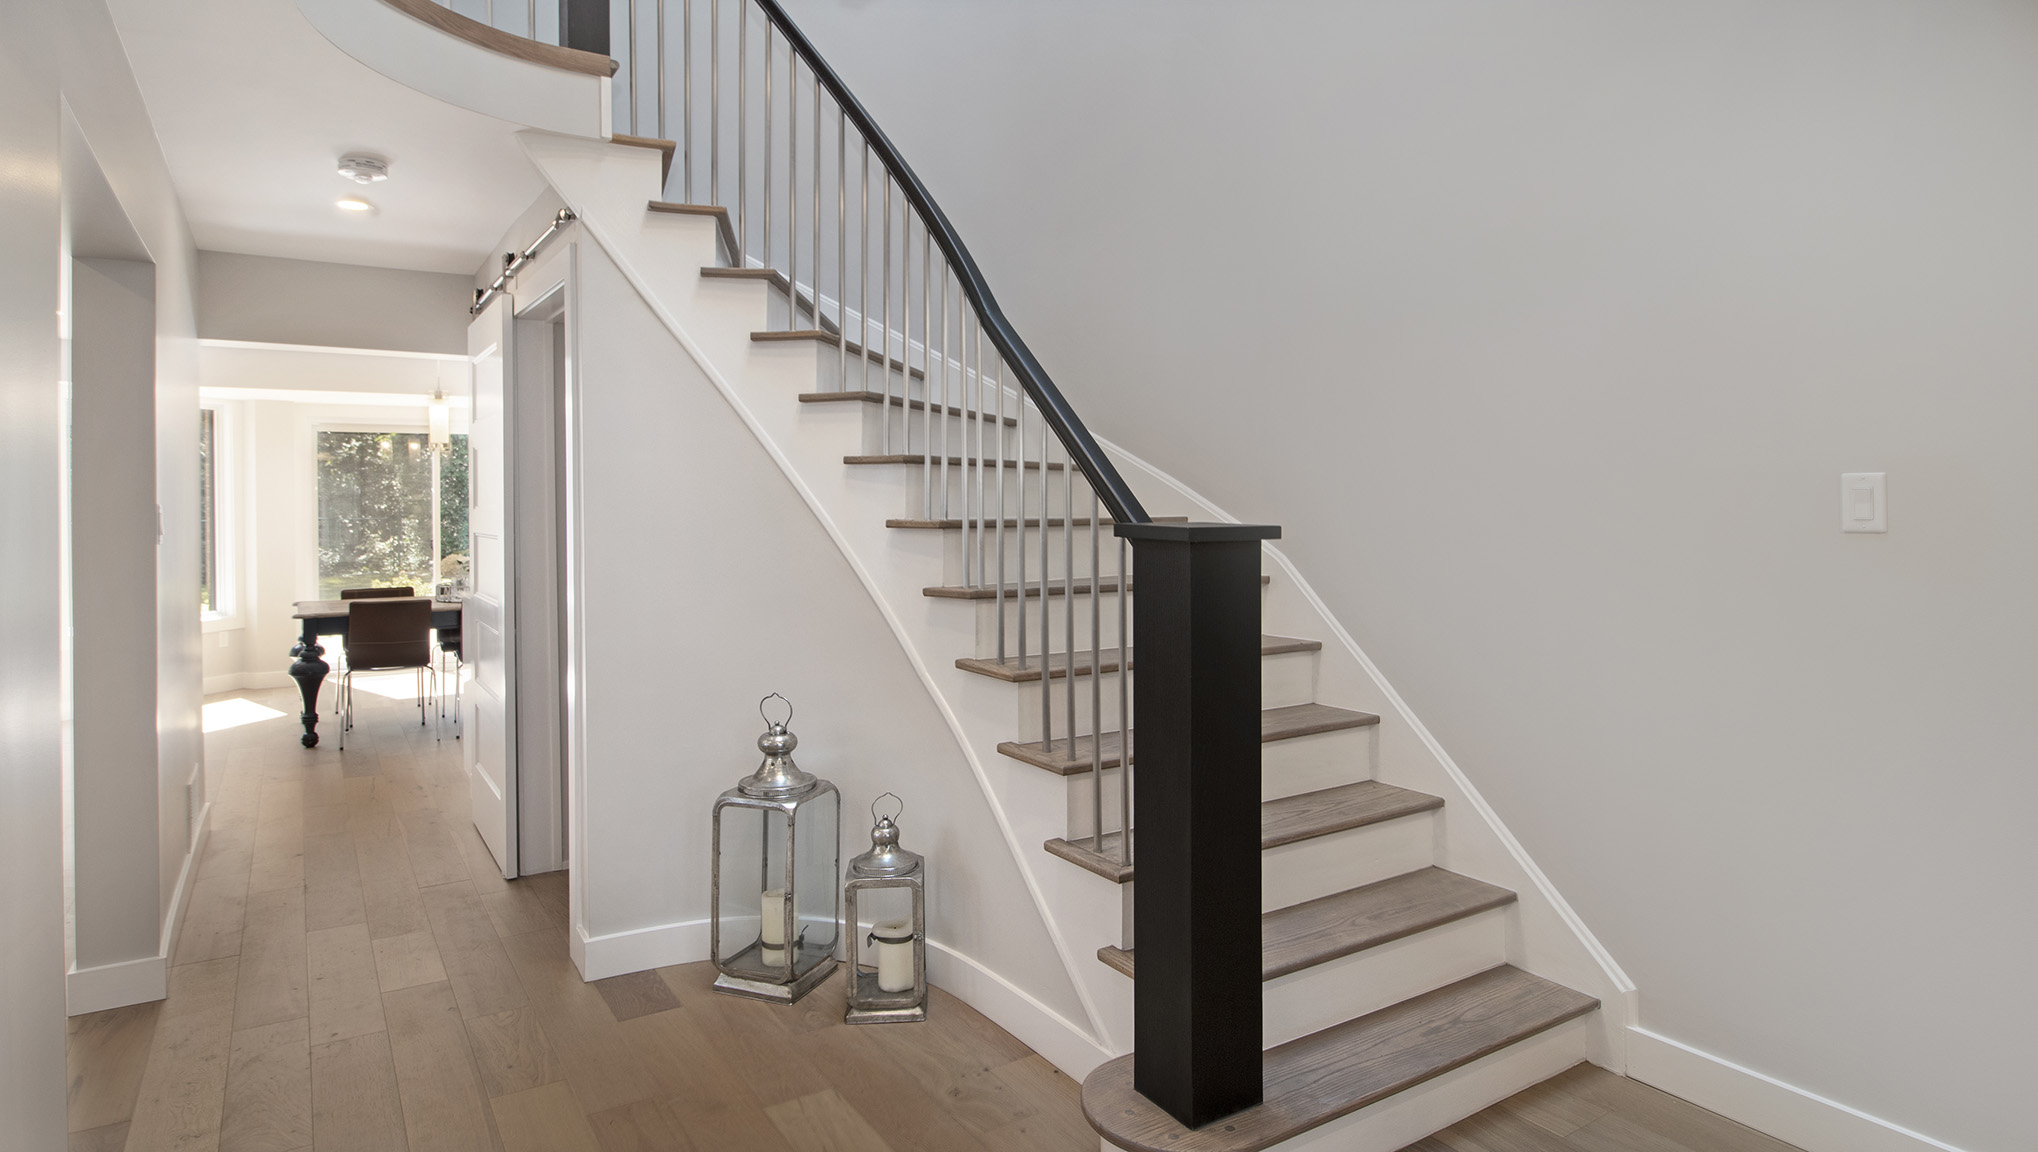 Custom Handrail and spindles